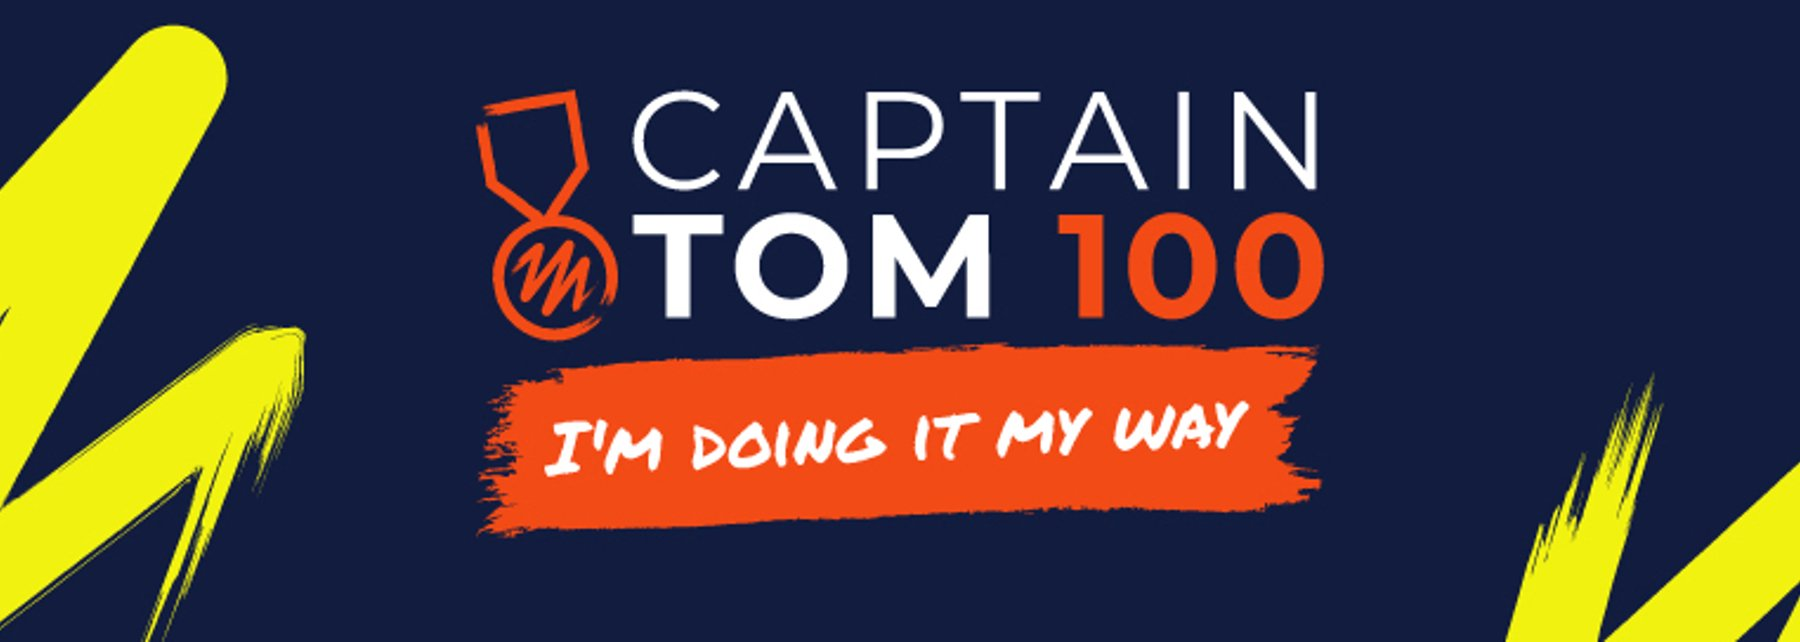 Captain Tom 100 - Do It Your Way